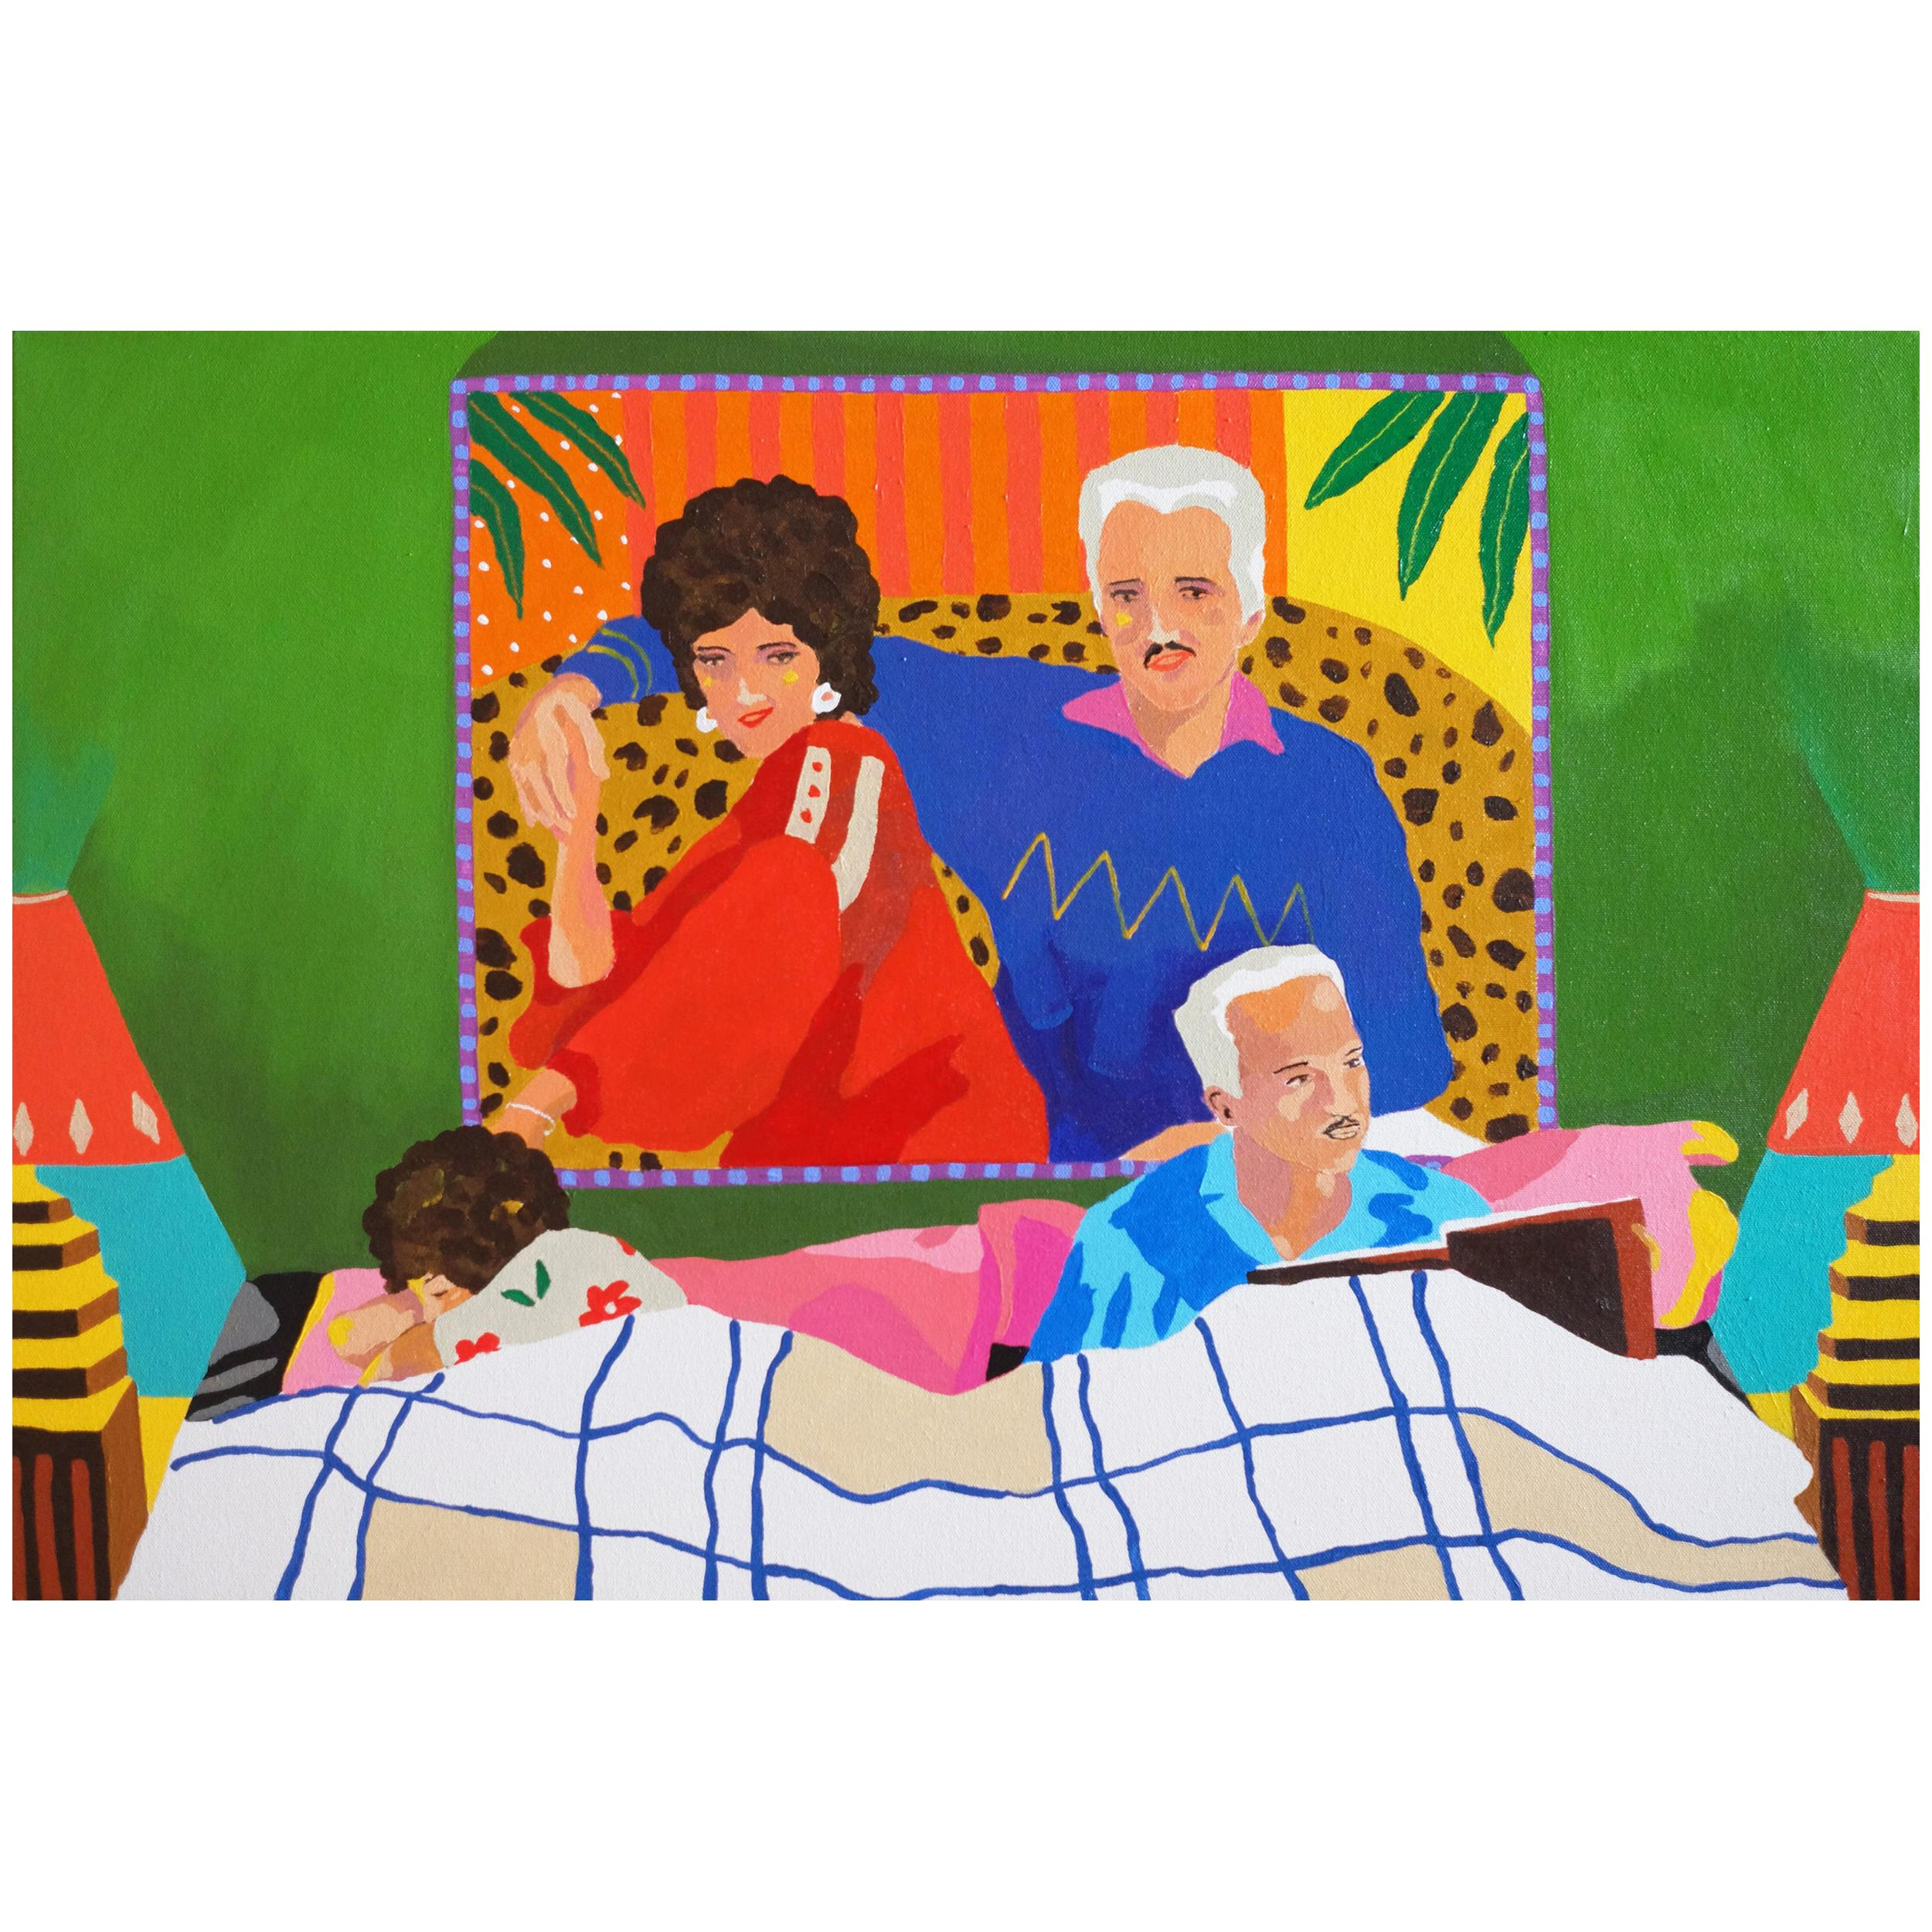 'The Big Picture' Portrait Painting by Alan Fears Pop Art